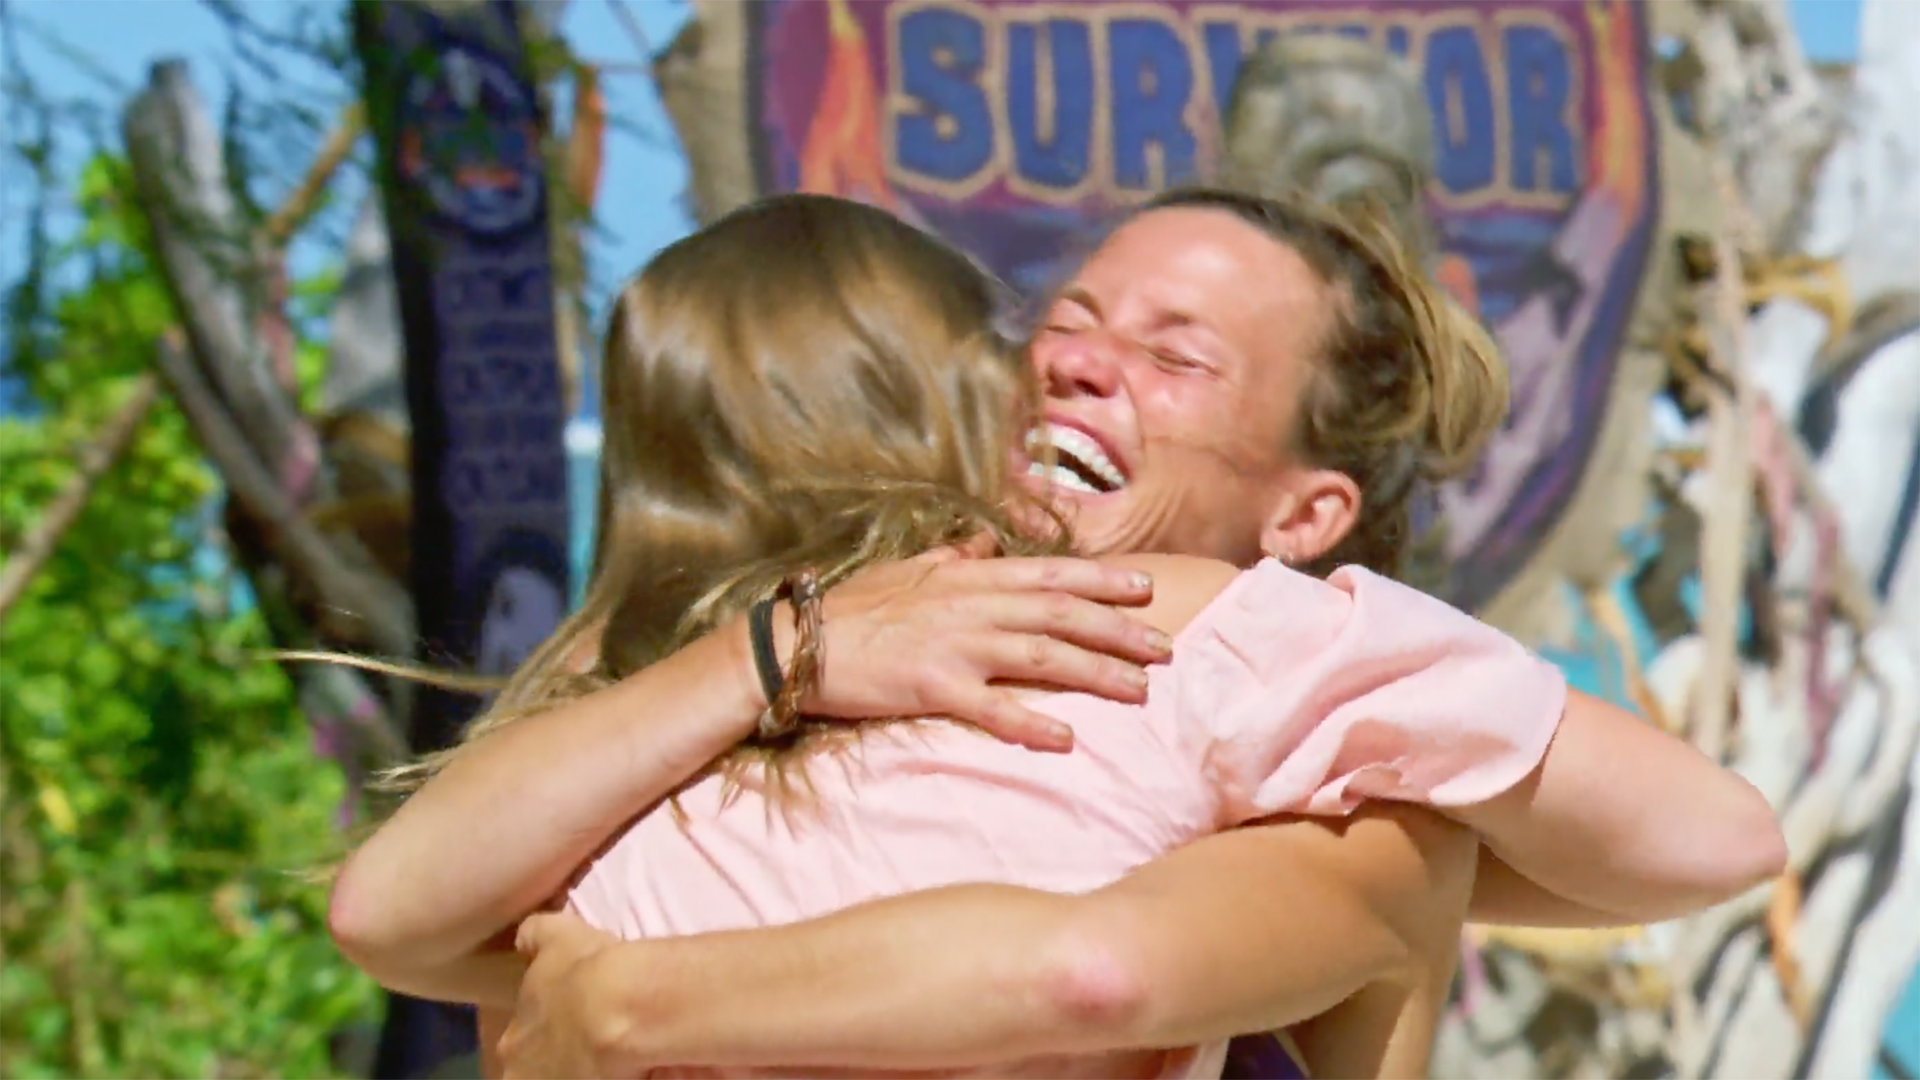 Season 36: Angela Perkins embraces her daughter.